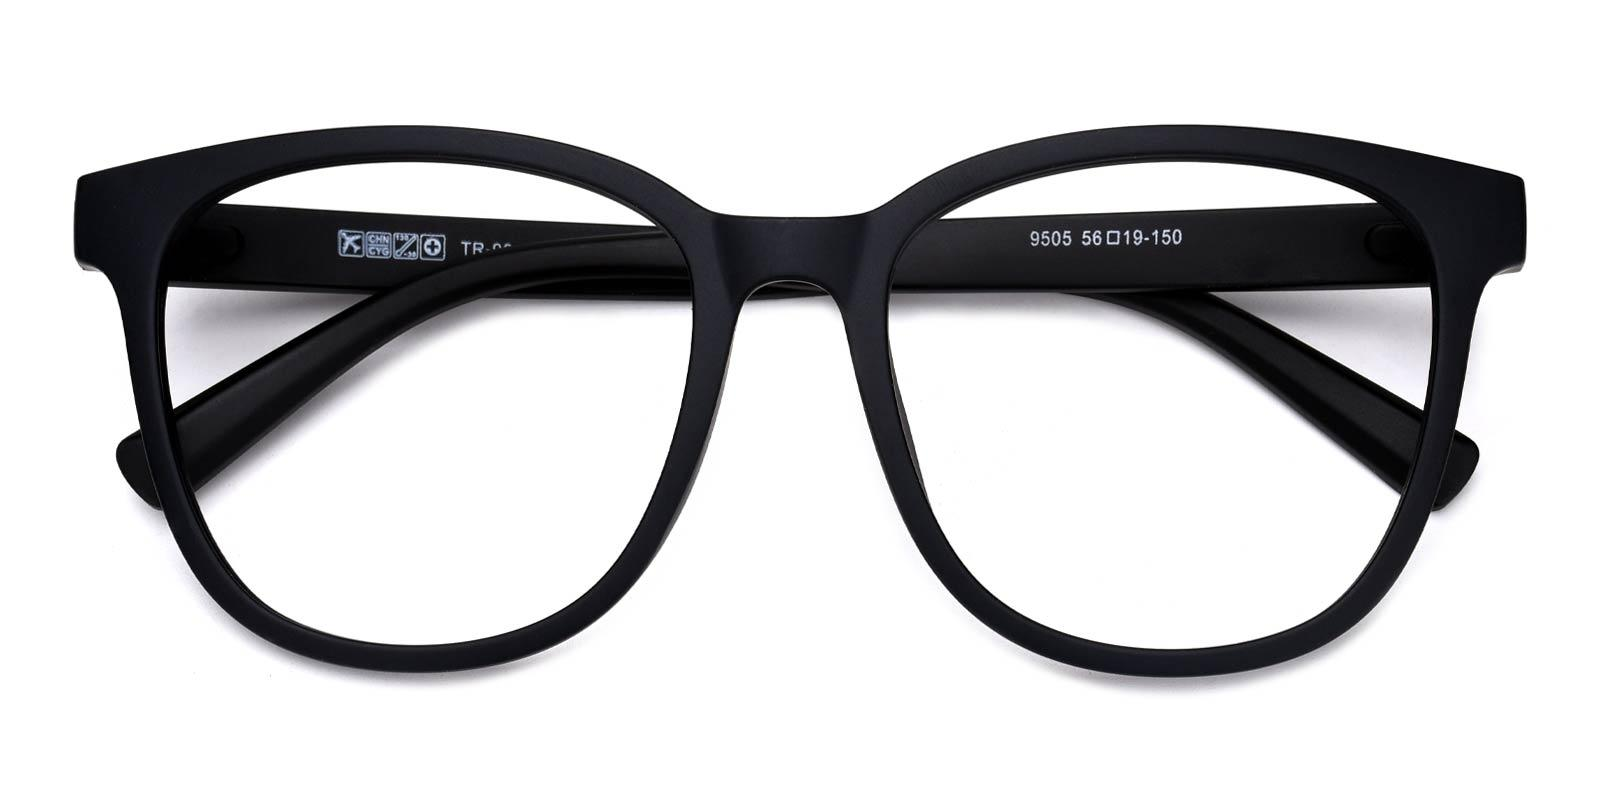 Edgar-Pattern-Square-TR-Eyeglasses-detail